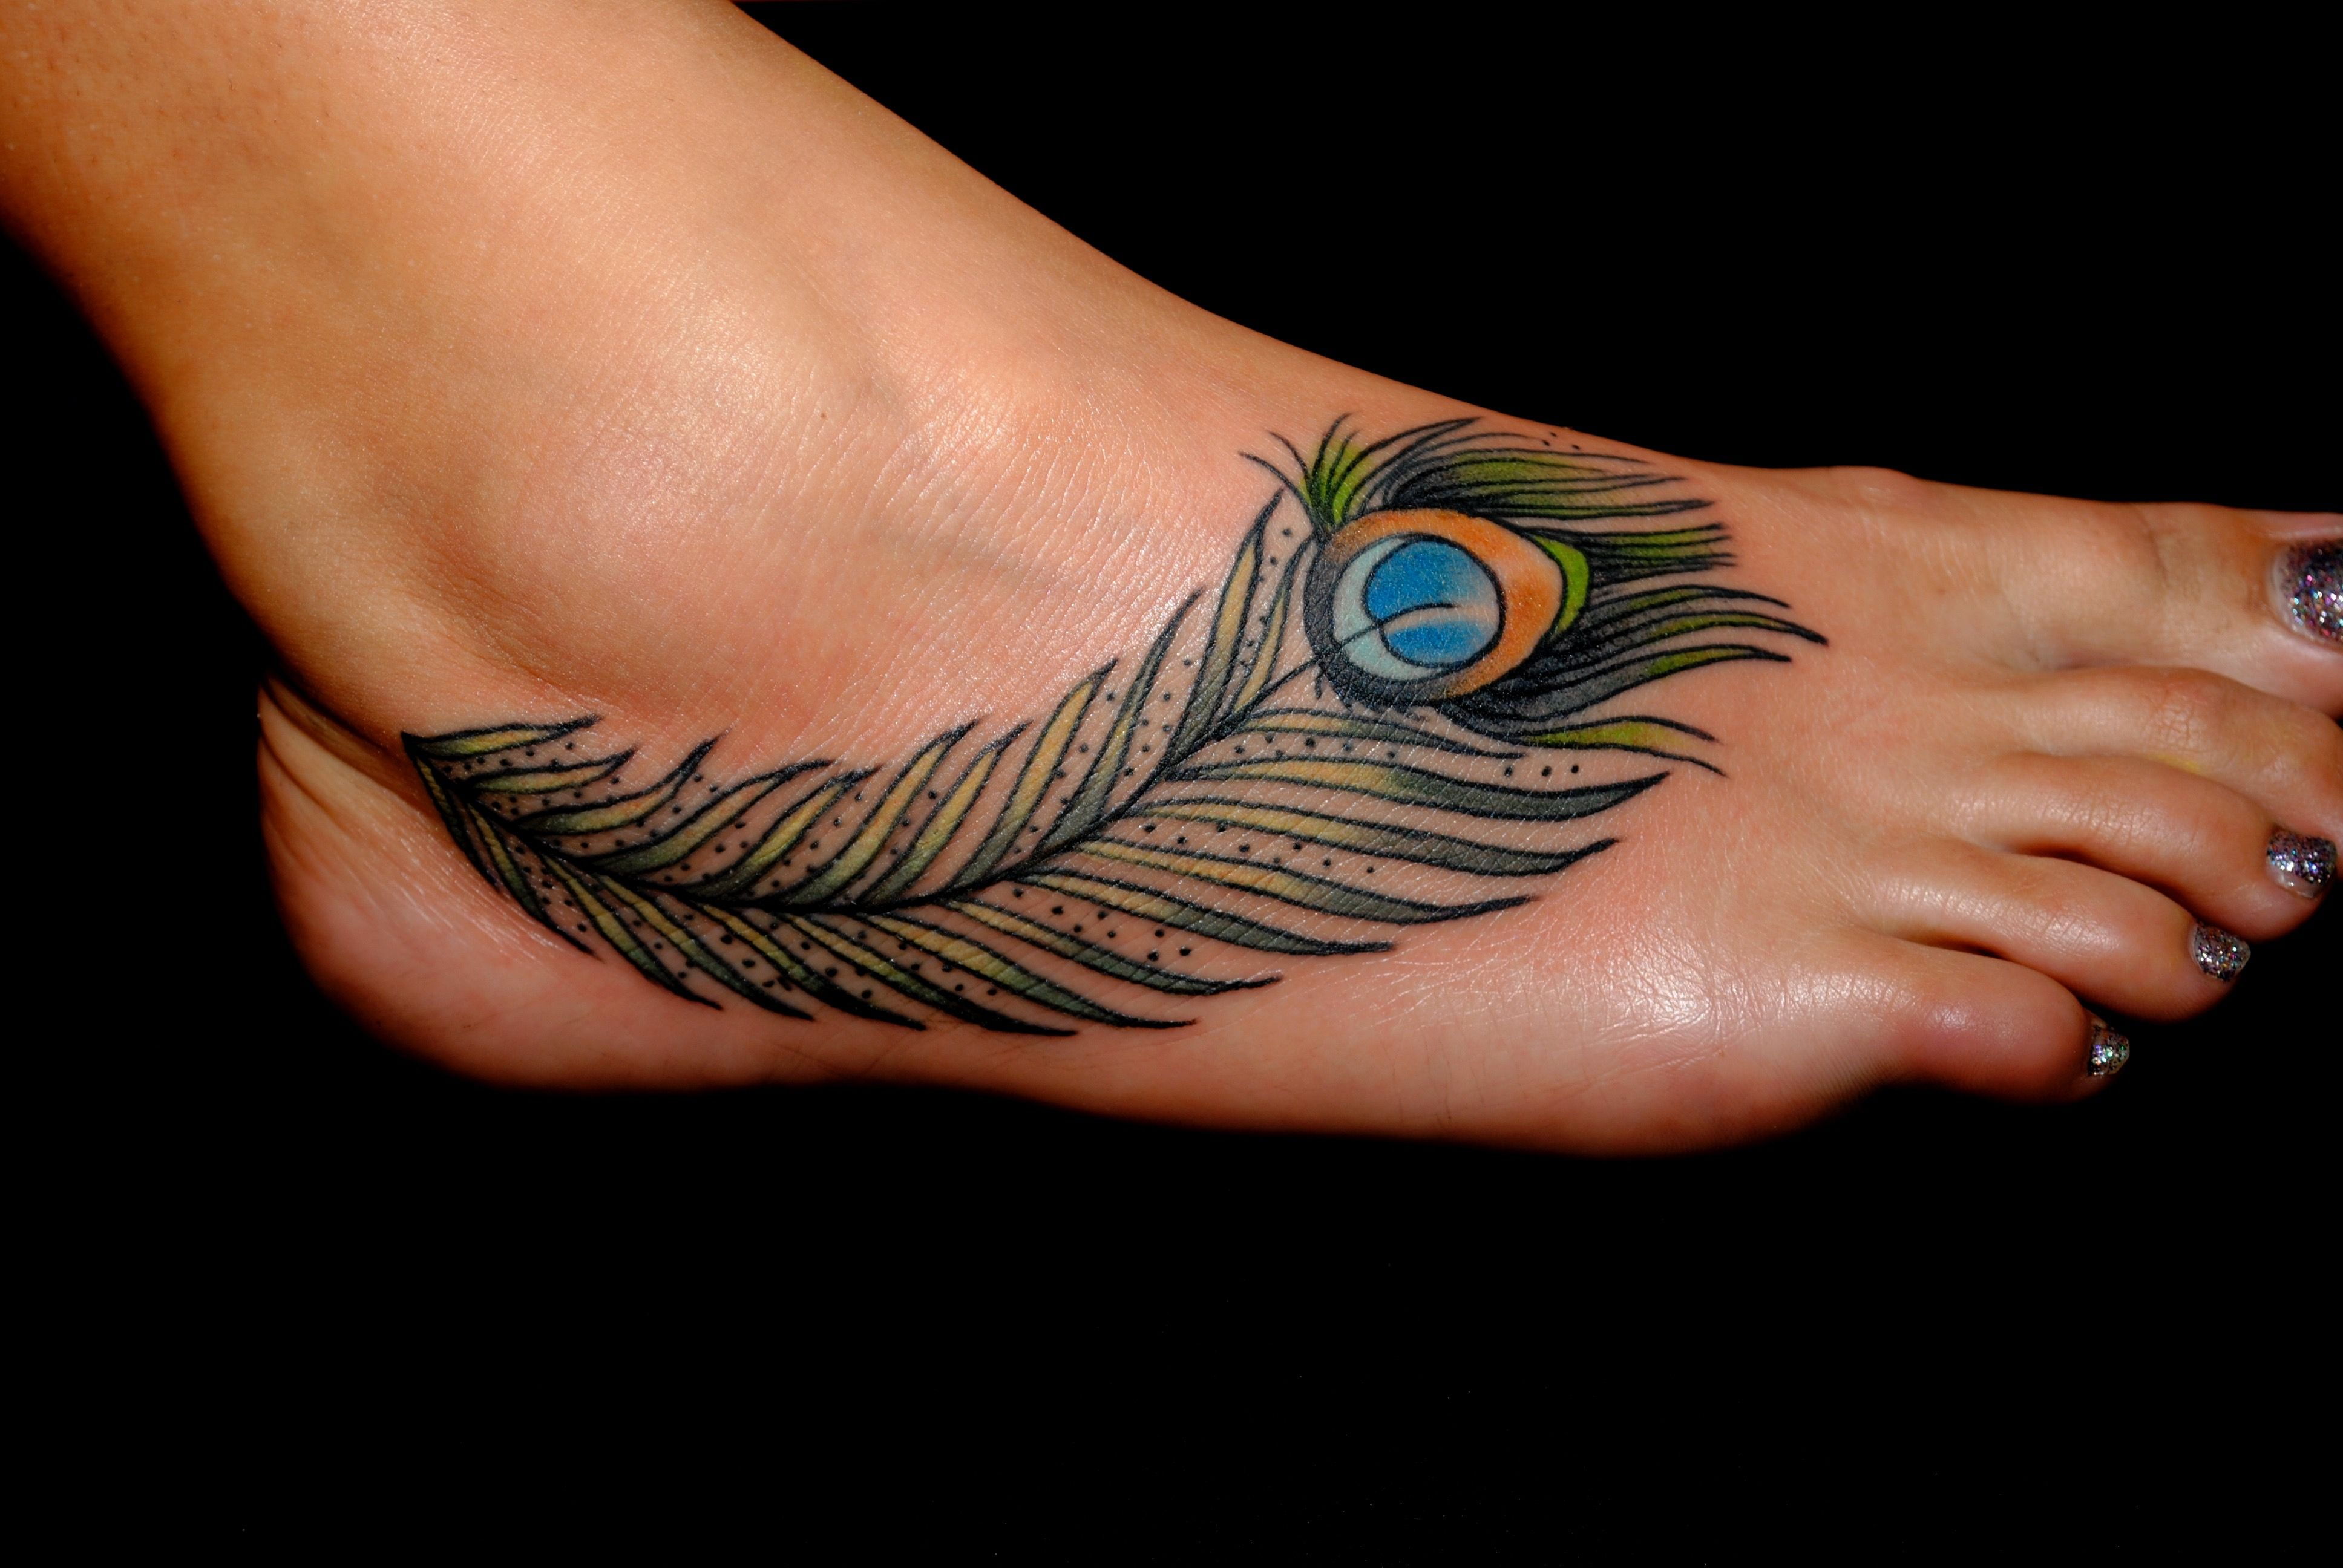 Pin by Tani on Tattoos Feather tattoo meaning, Peacock